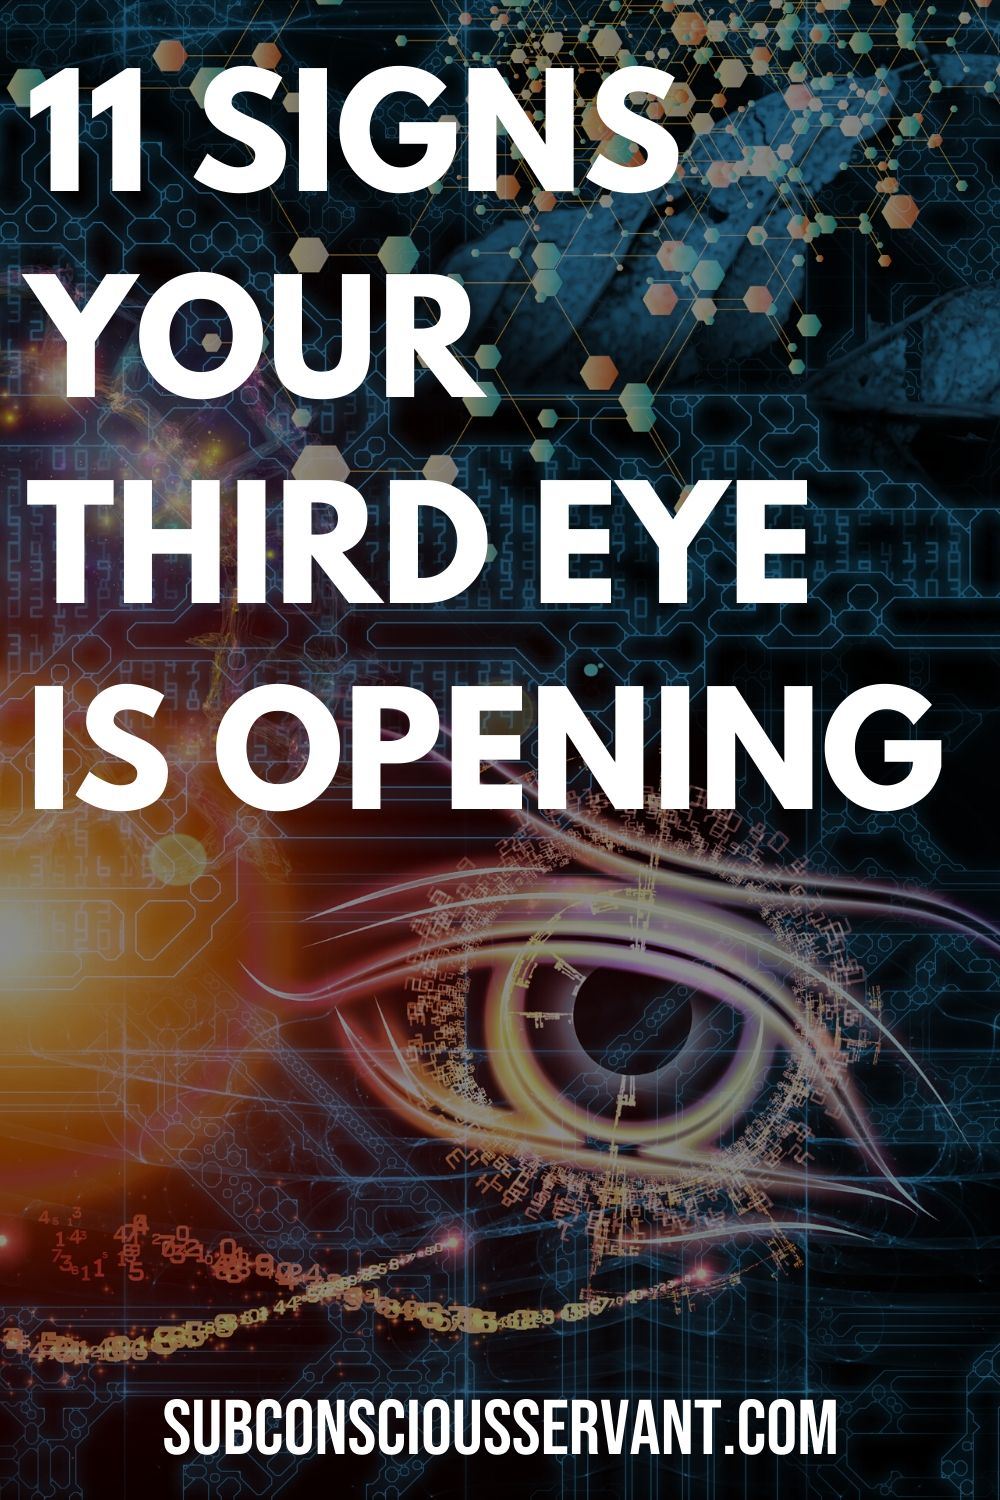 11 Signs your Third Eye is Opening